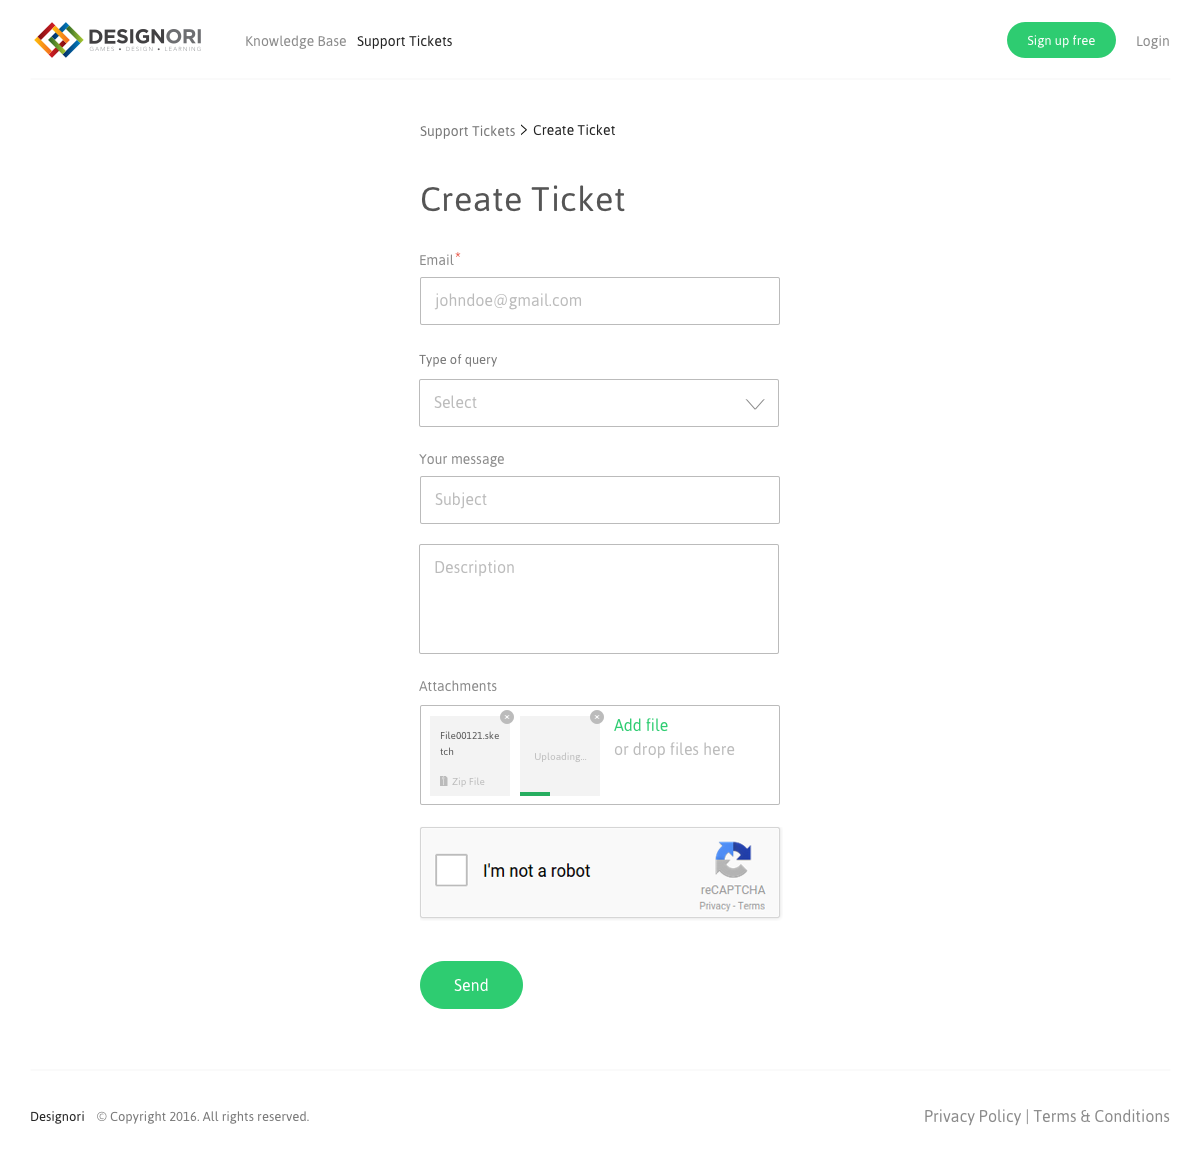 Support site knowledge base 04